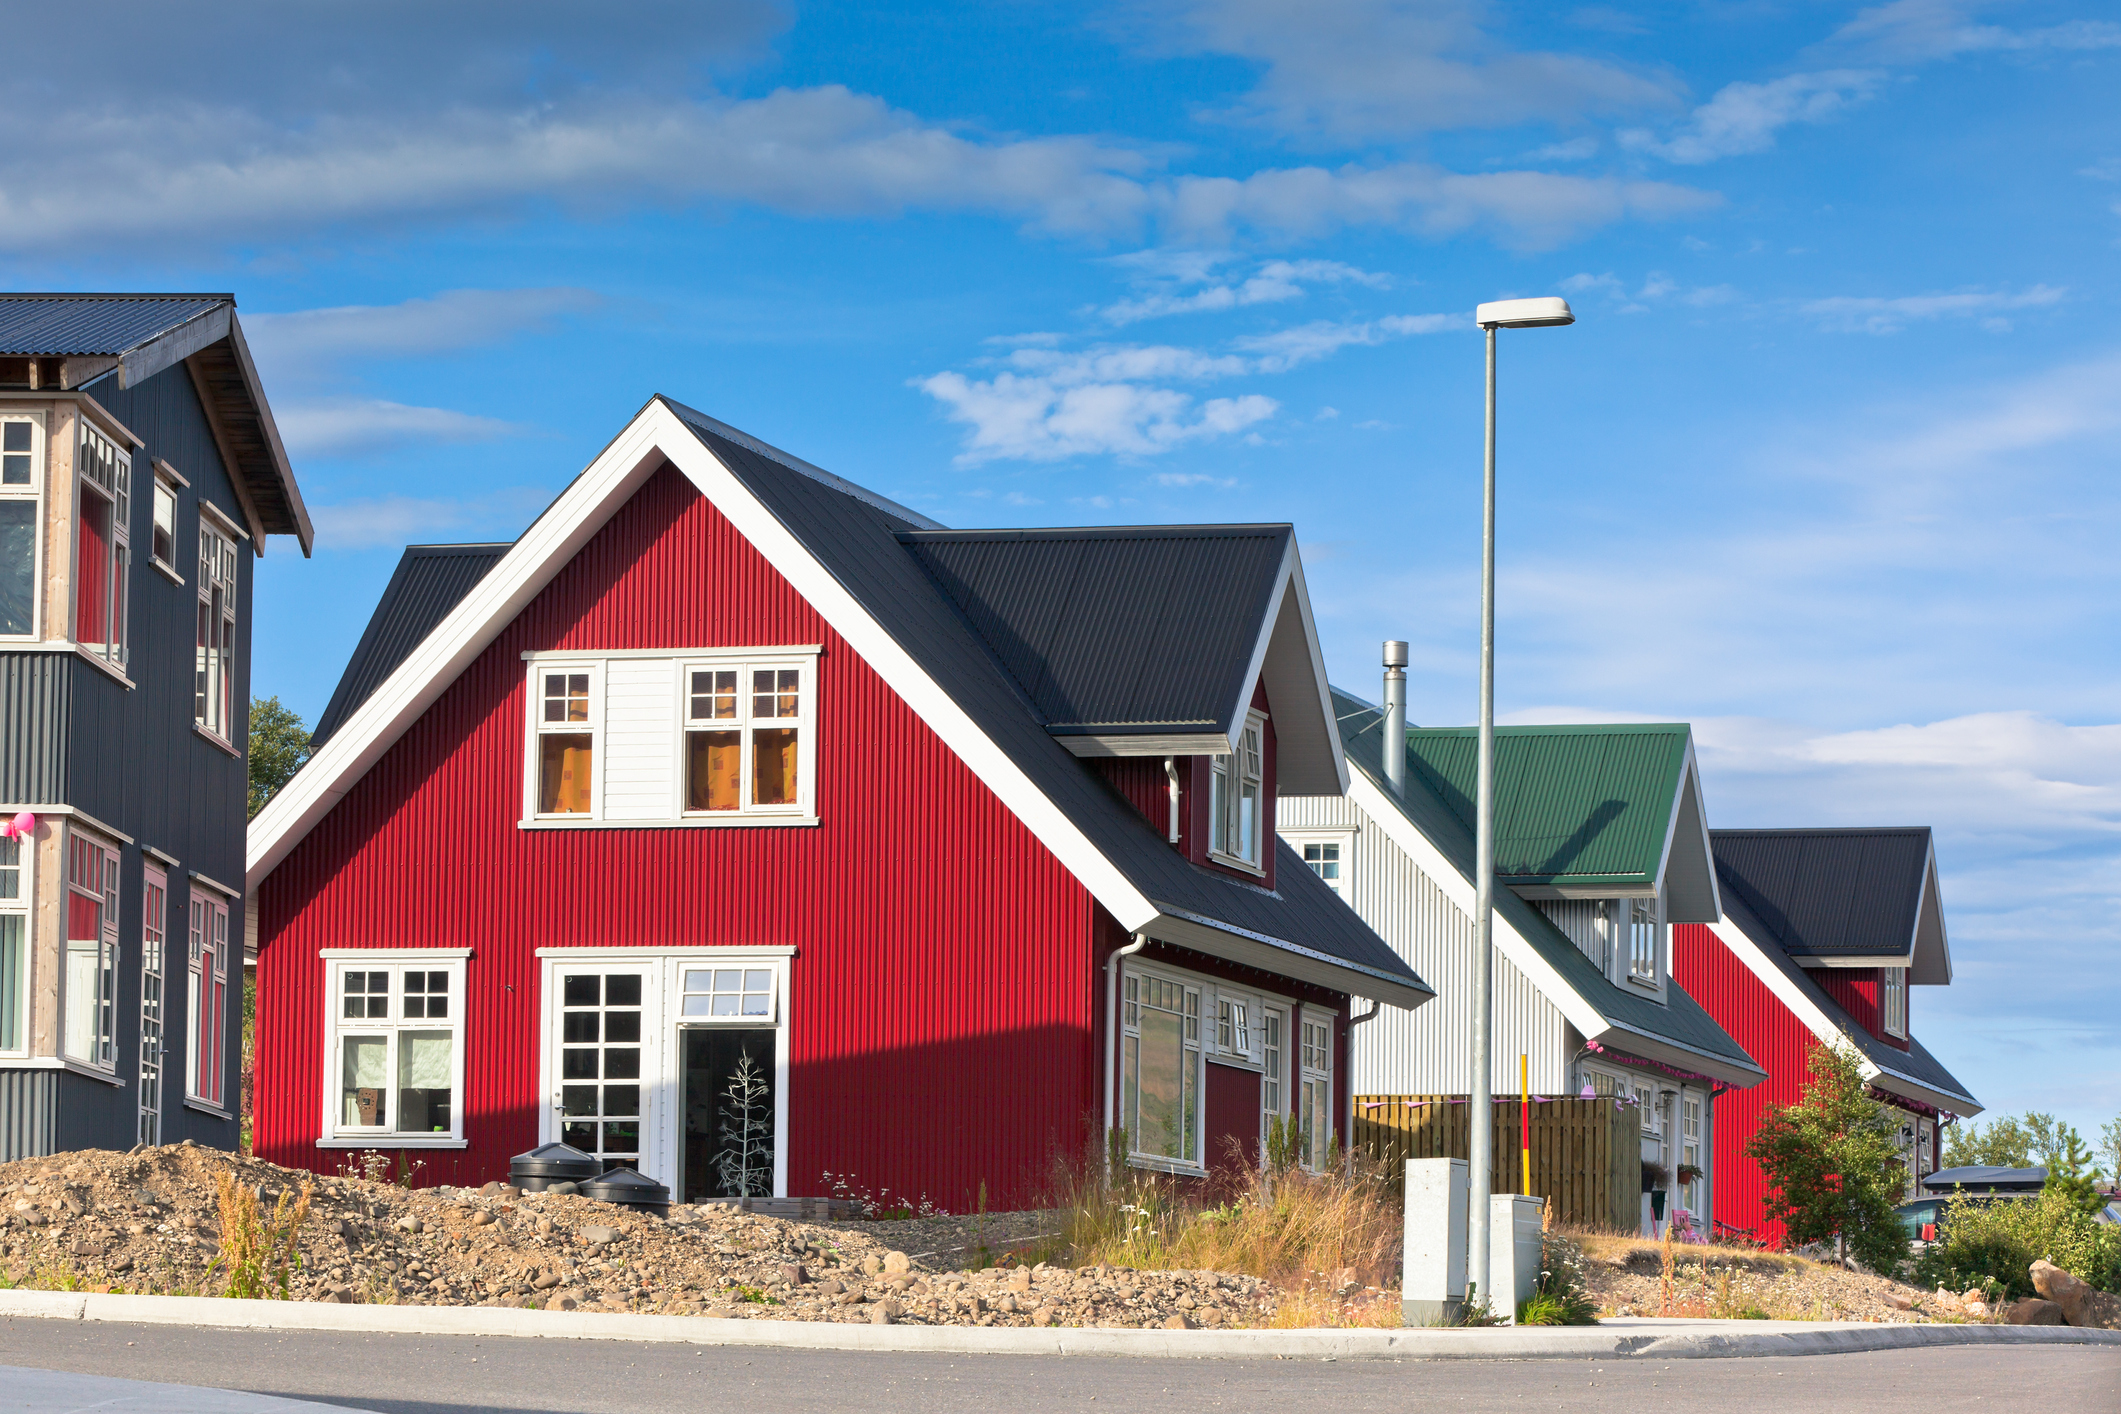 bright siding on a row of houses